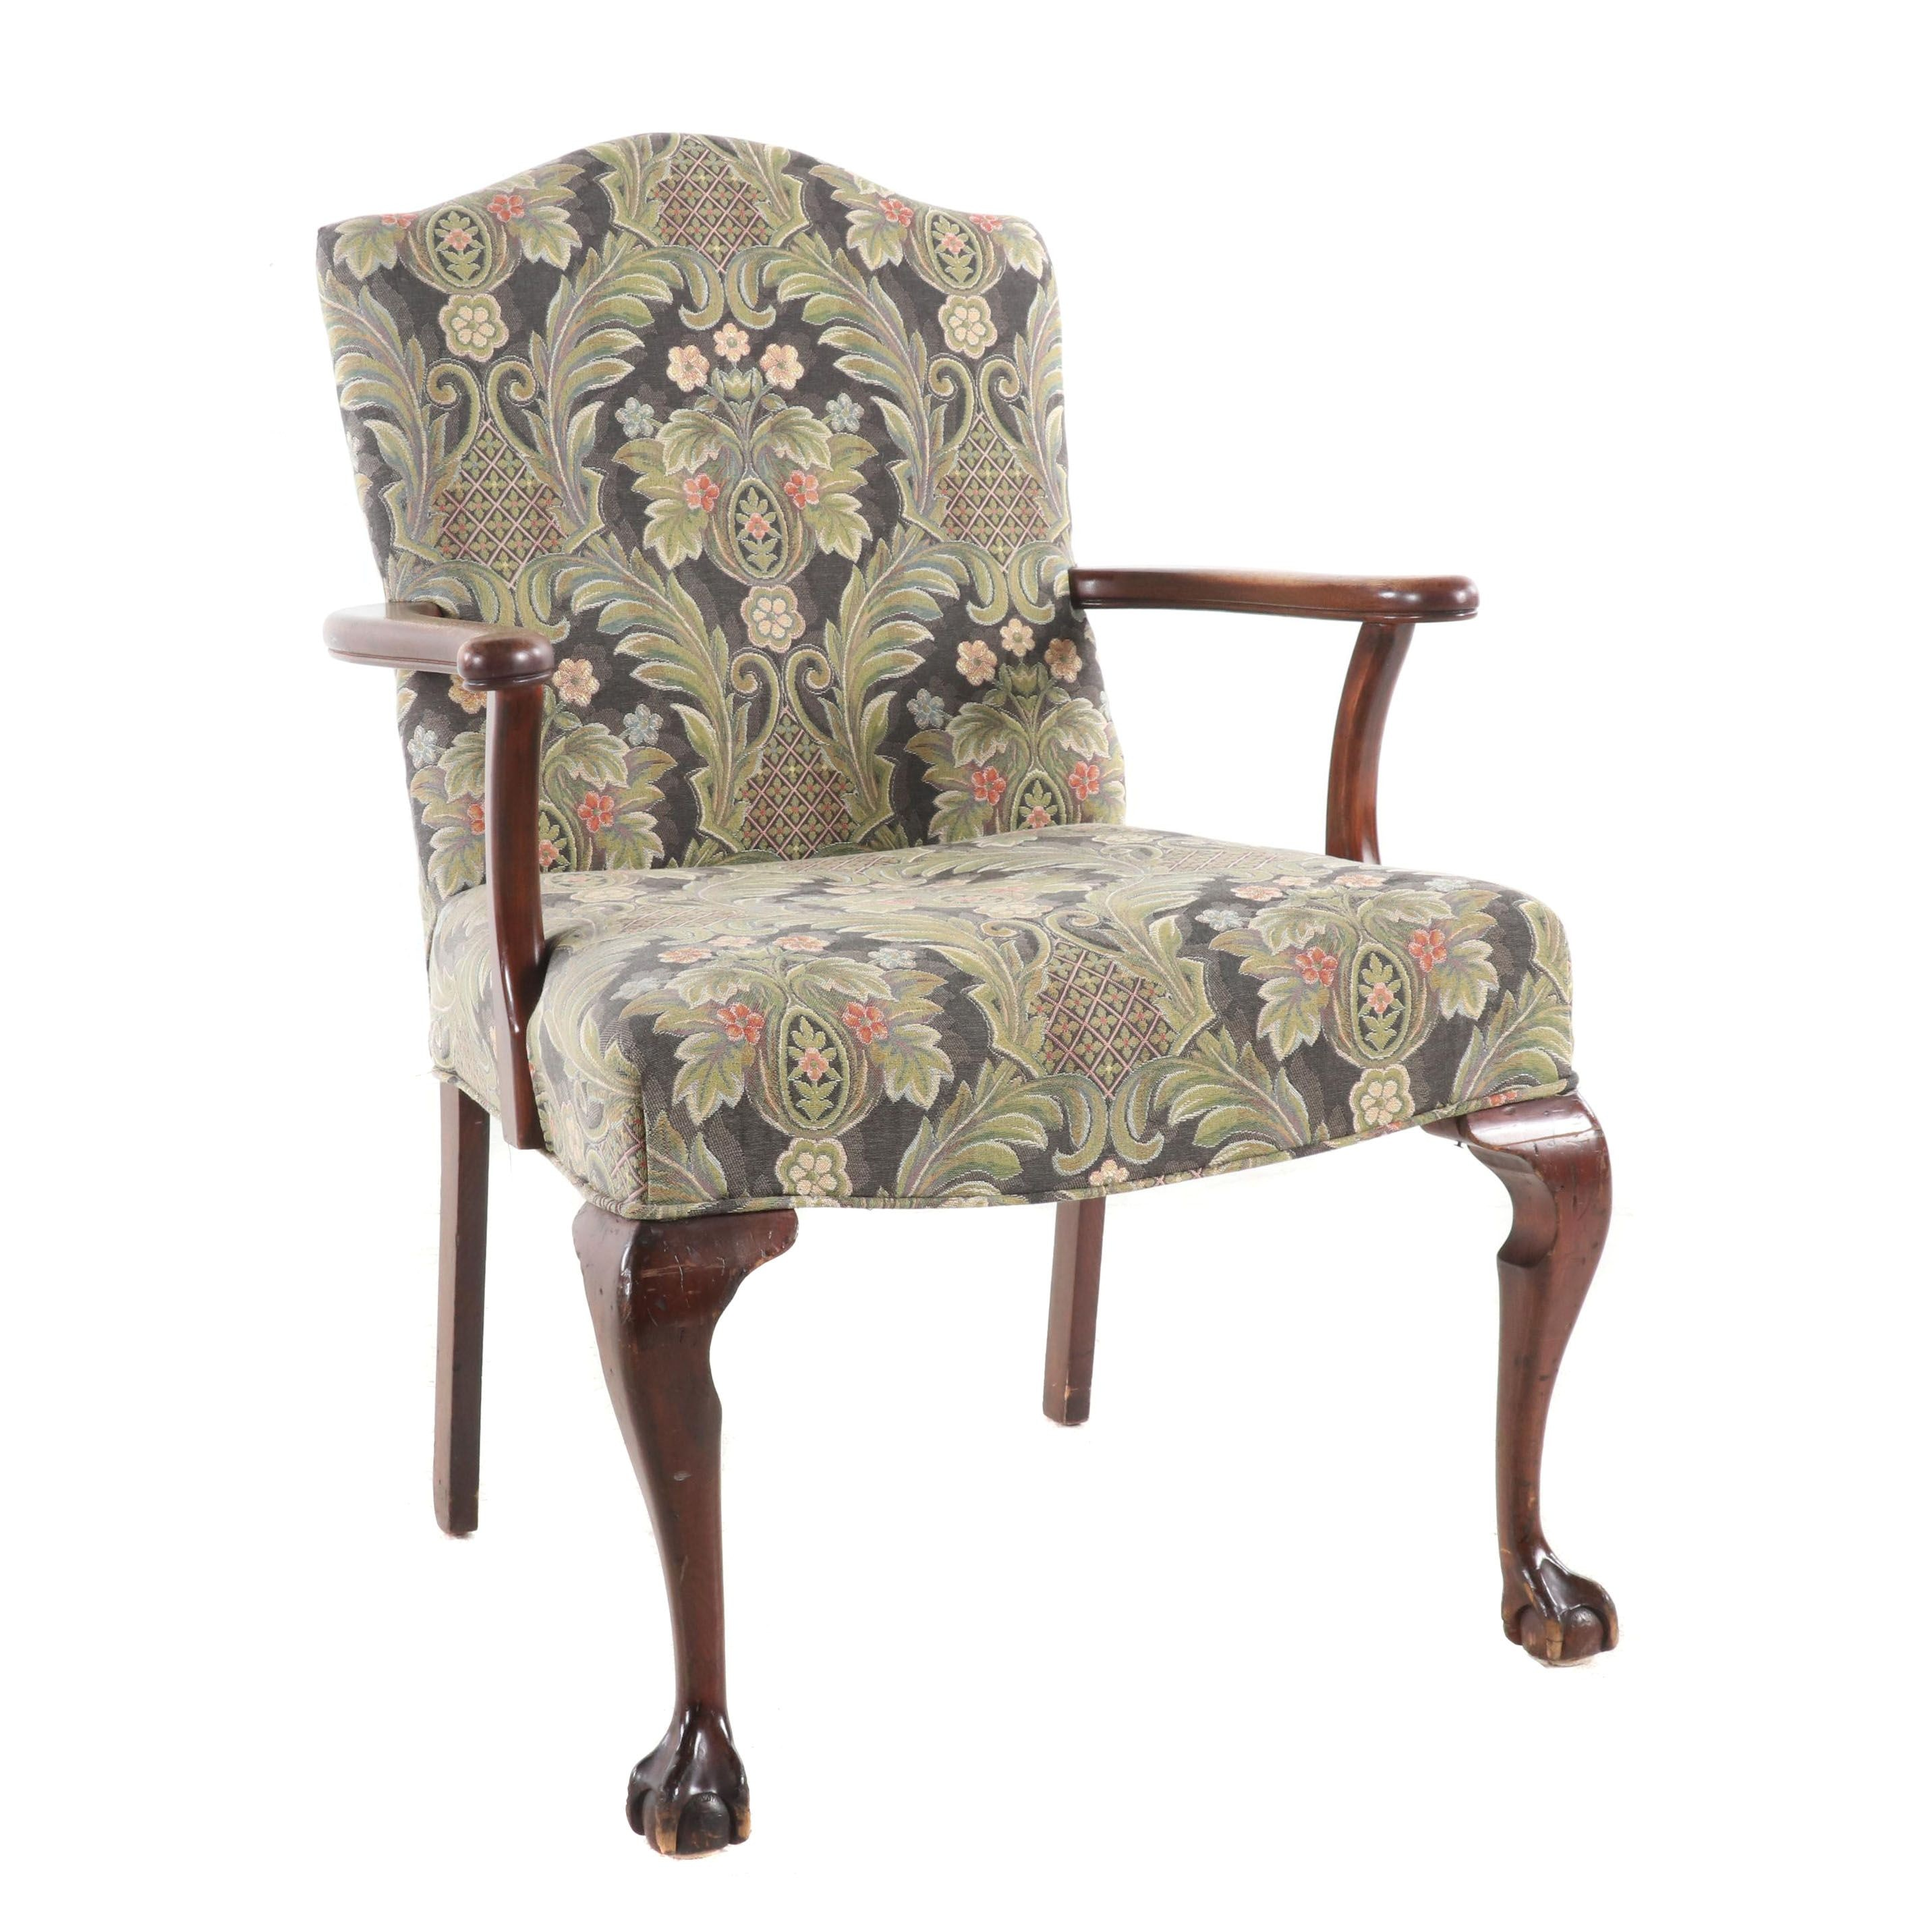 Chippendale Style Upholstered Mahogany Finish Armchair, Mid-Century